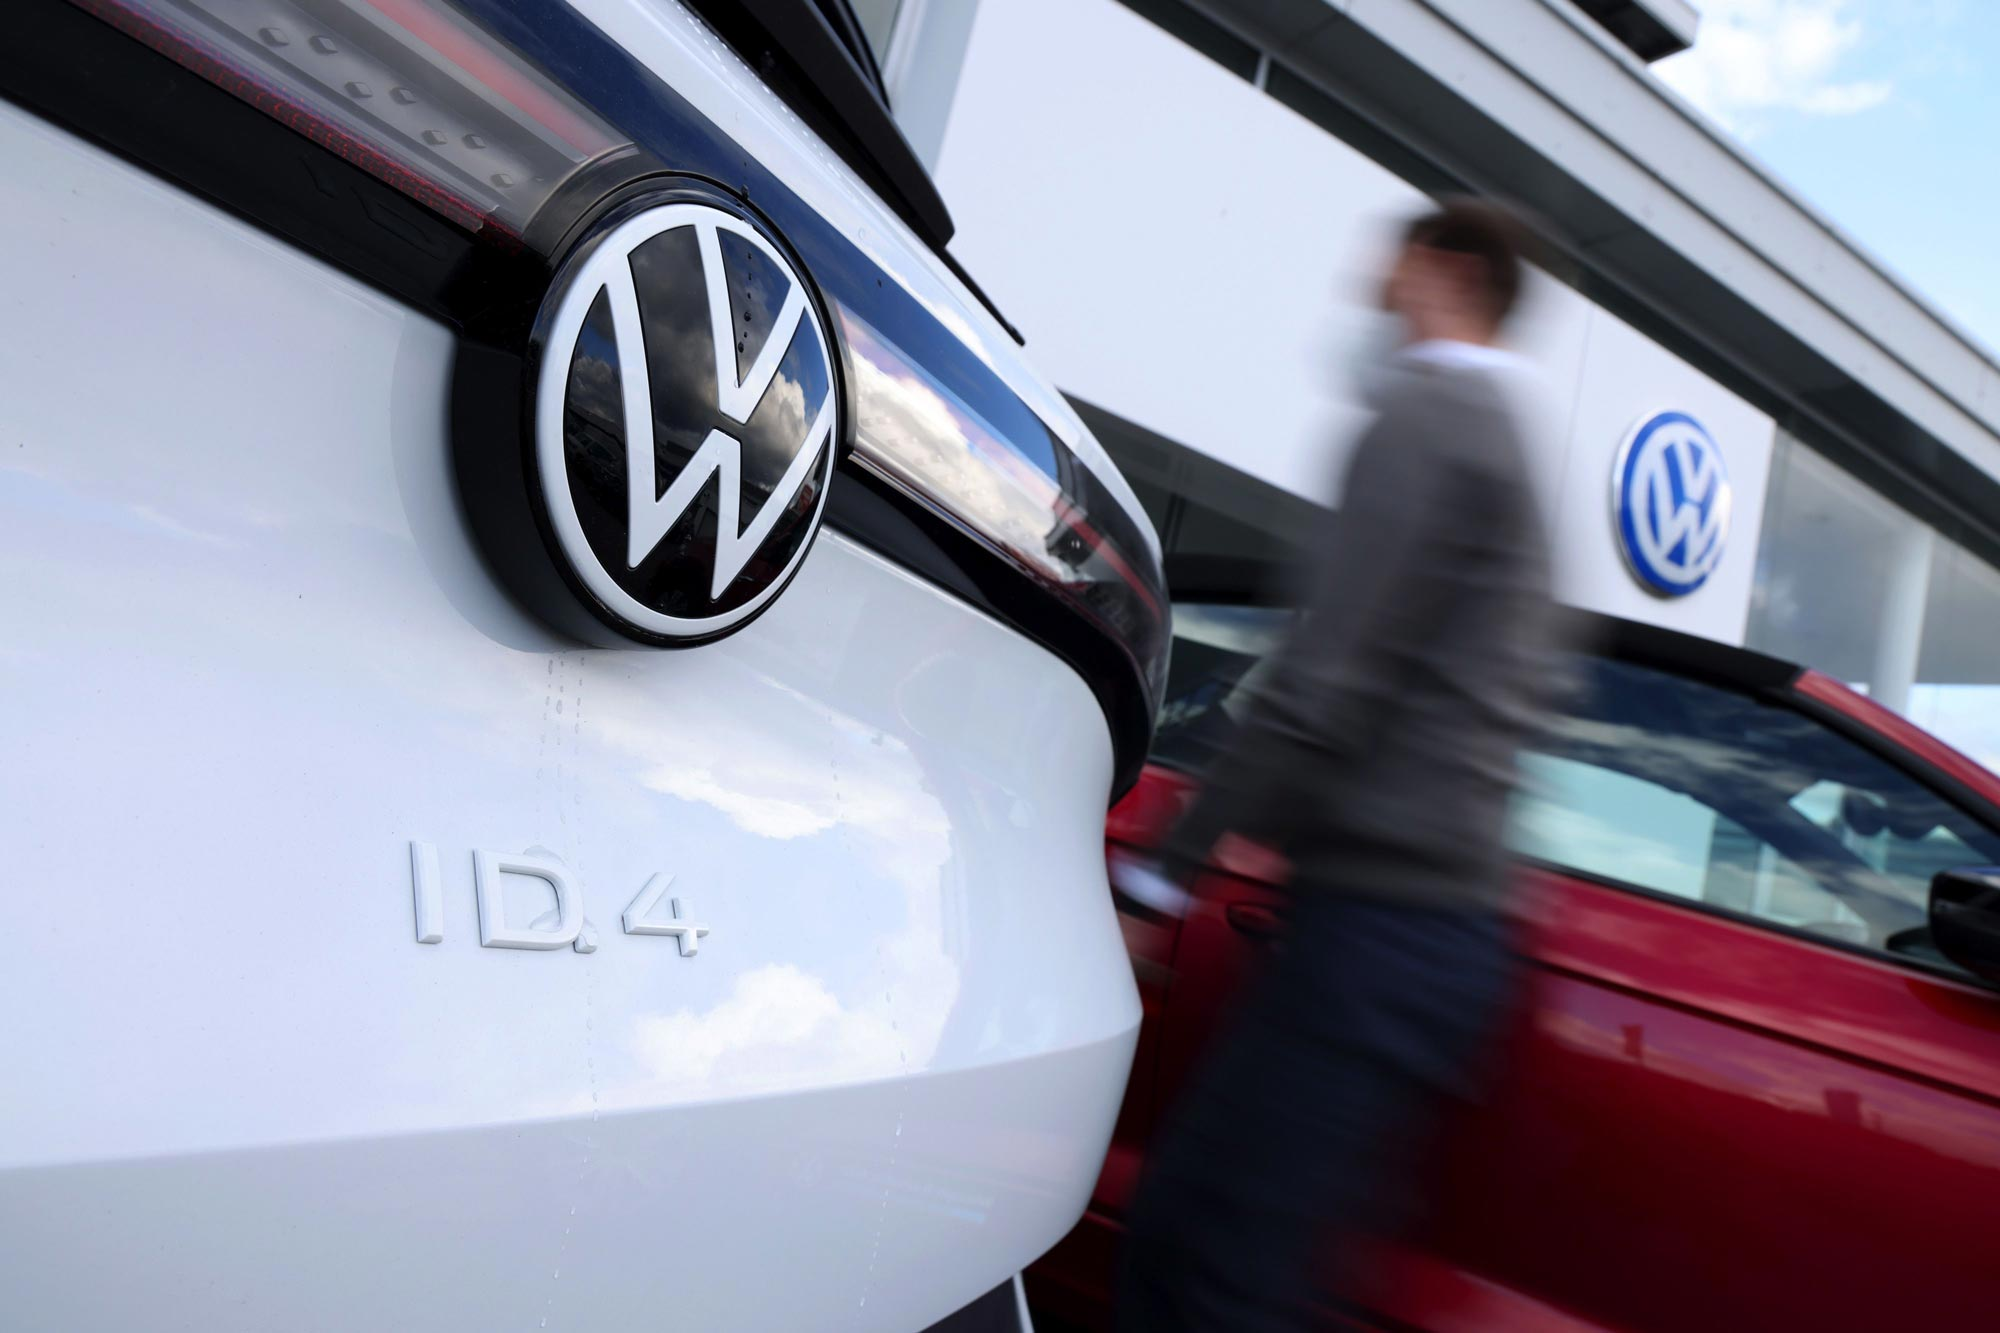 VW's 'Voltswagen' gambit is nothing more than an April Fools' stunt